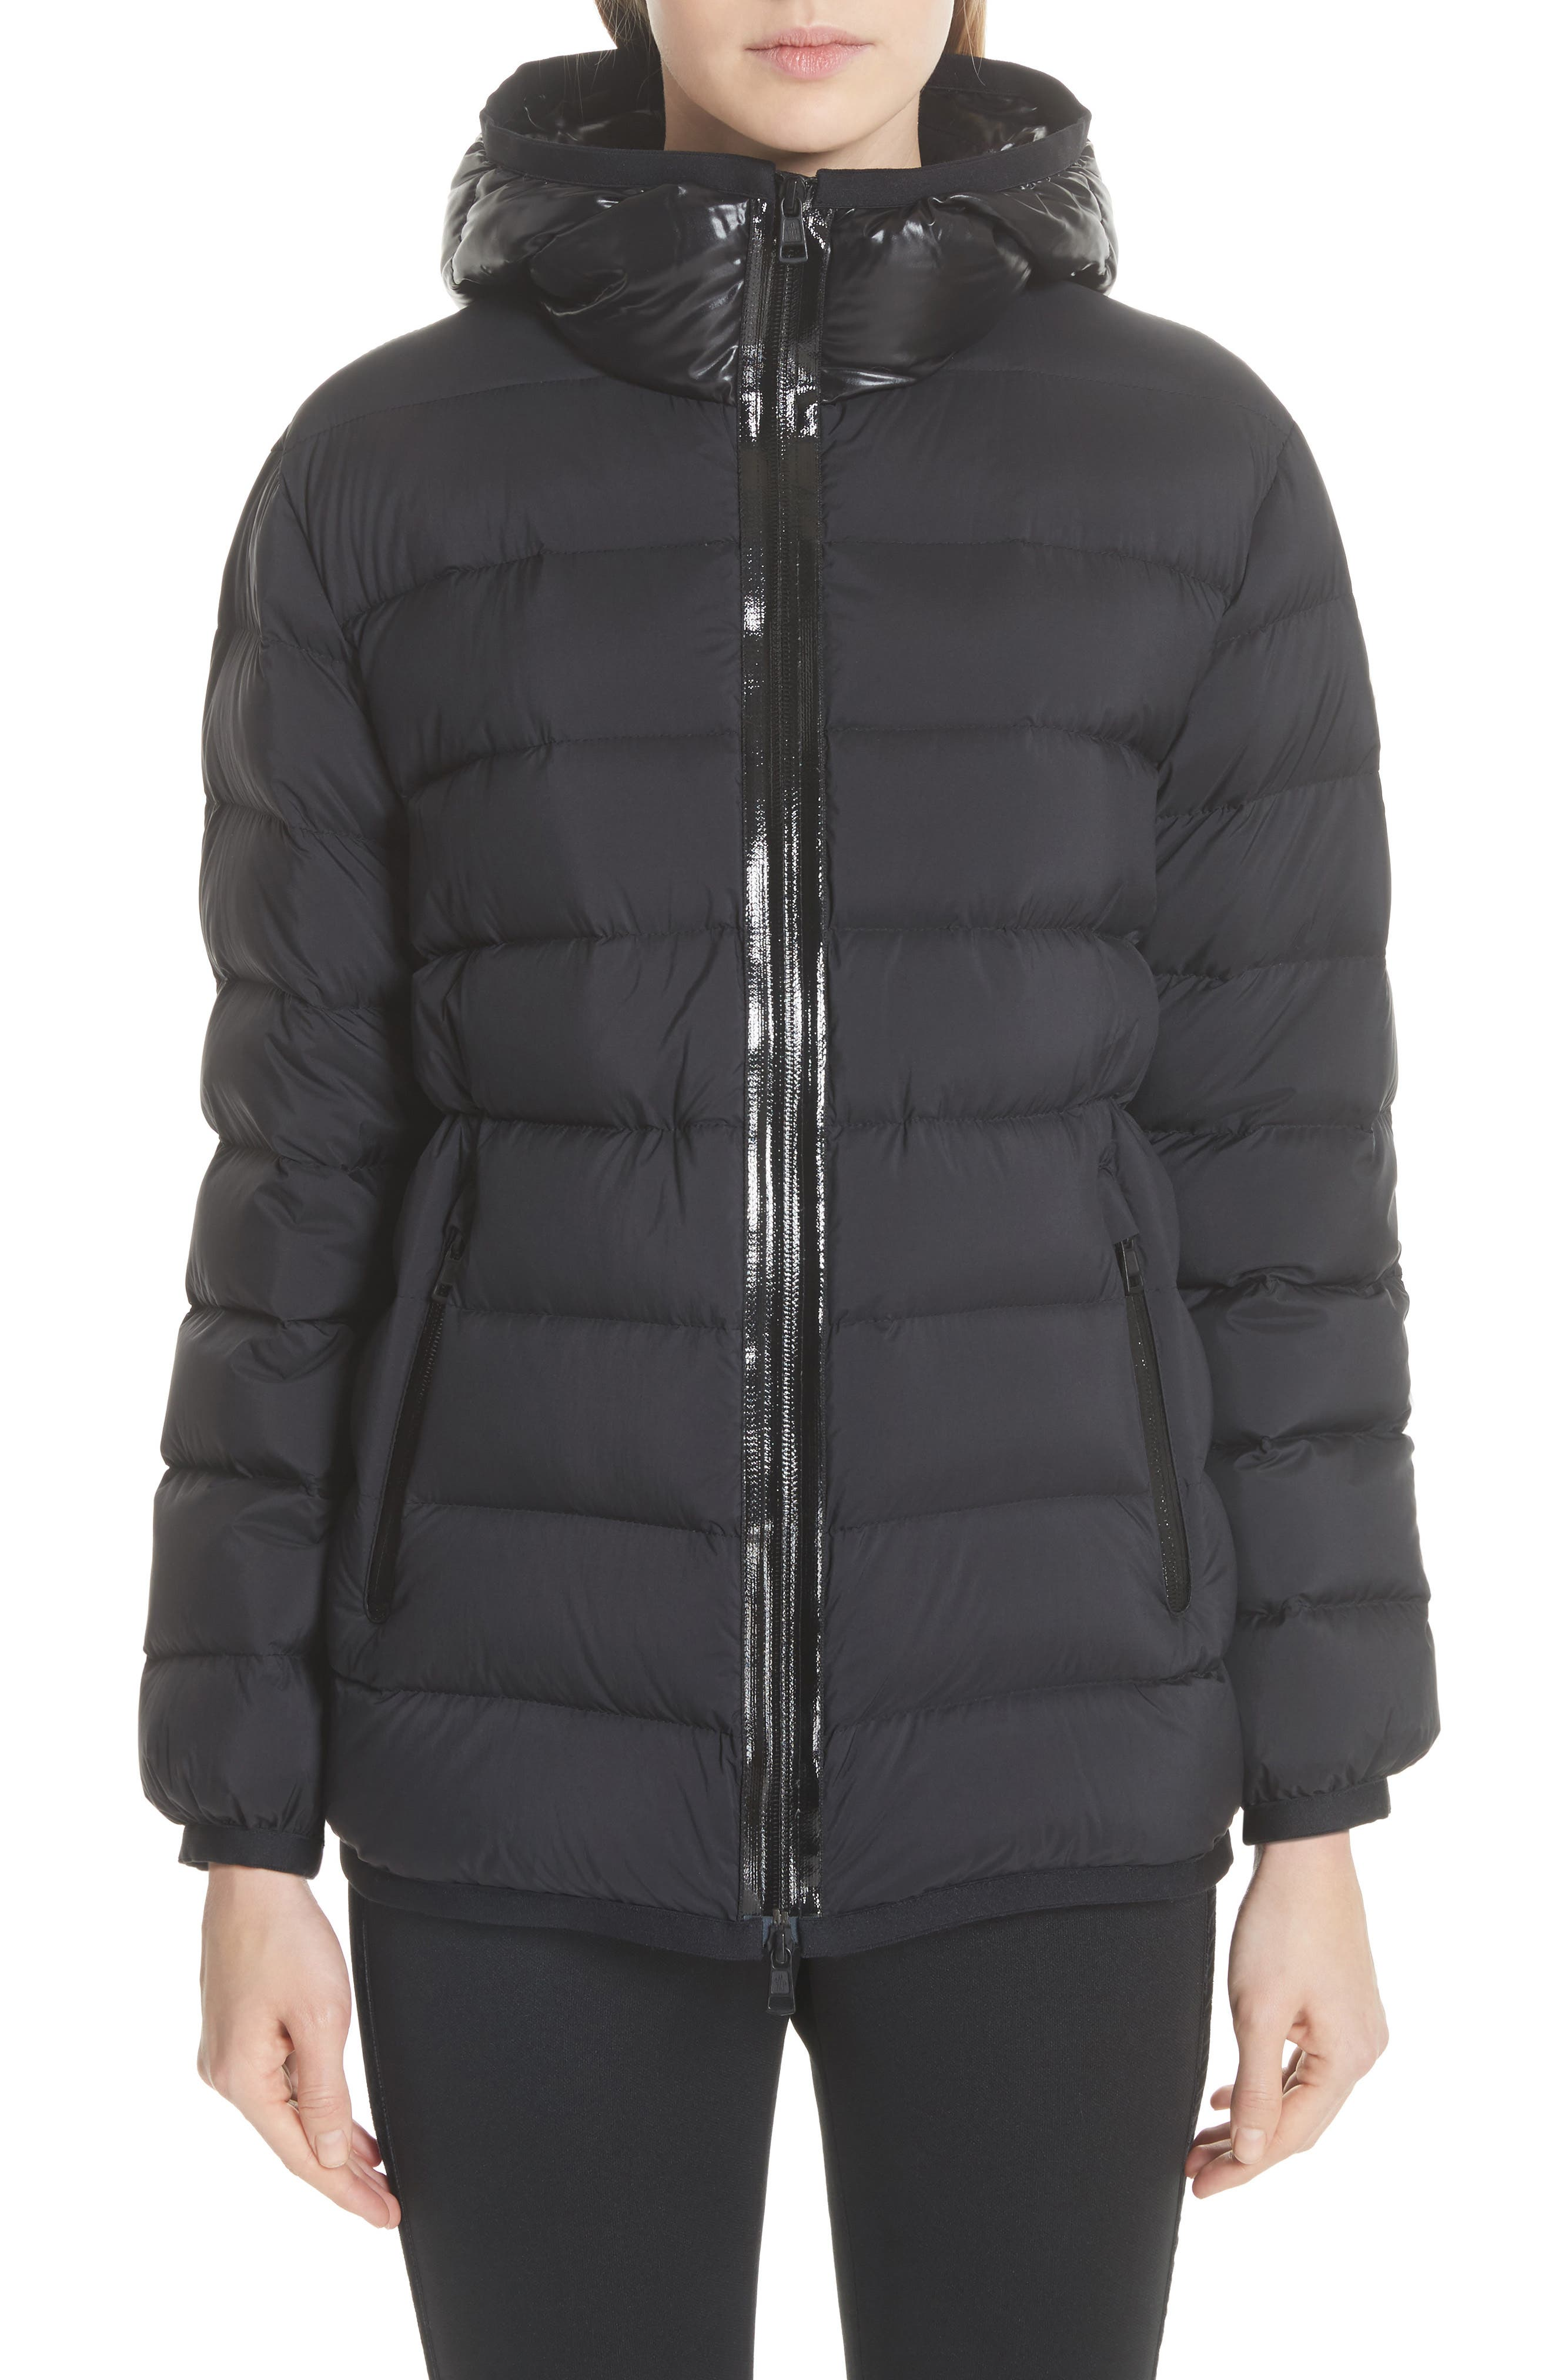 Goeland Quilted Down Jacket,                             Main thumbnail 1, color,                             BLACK